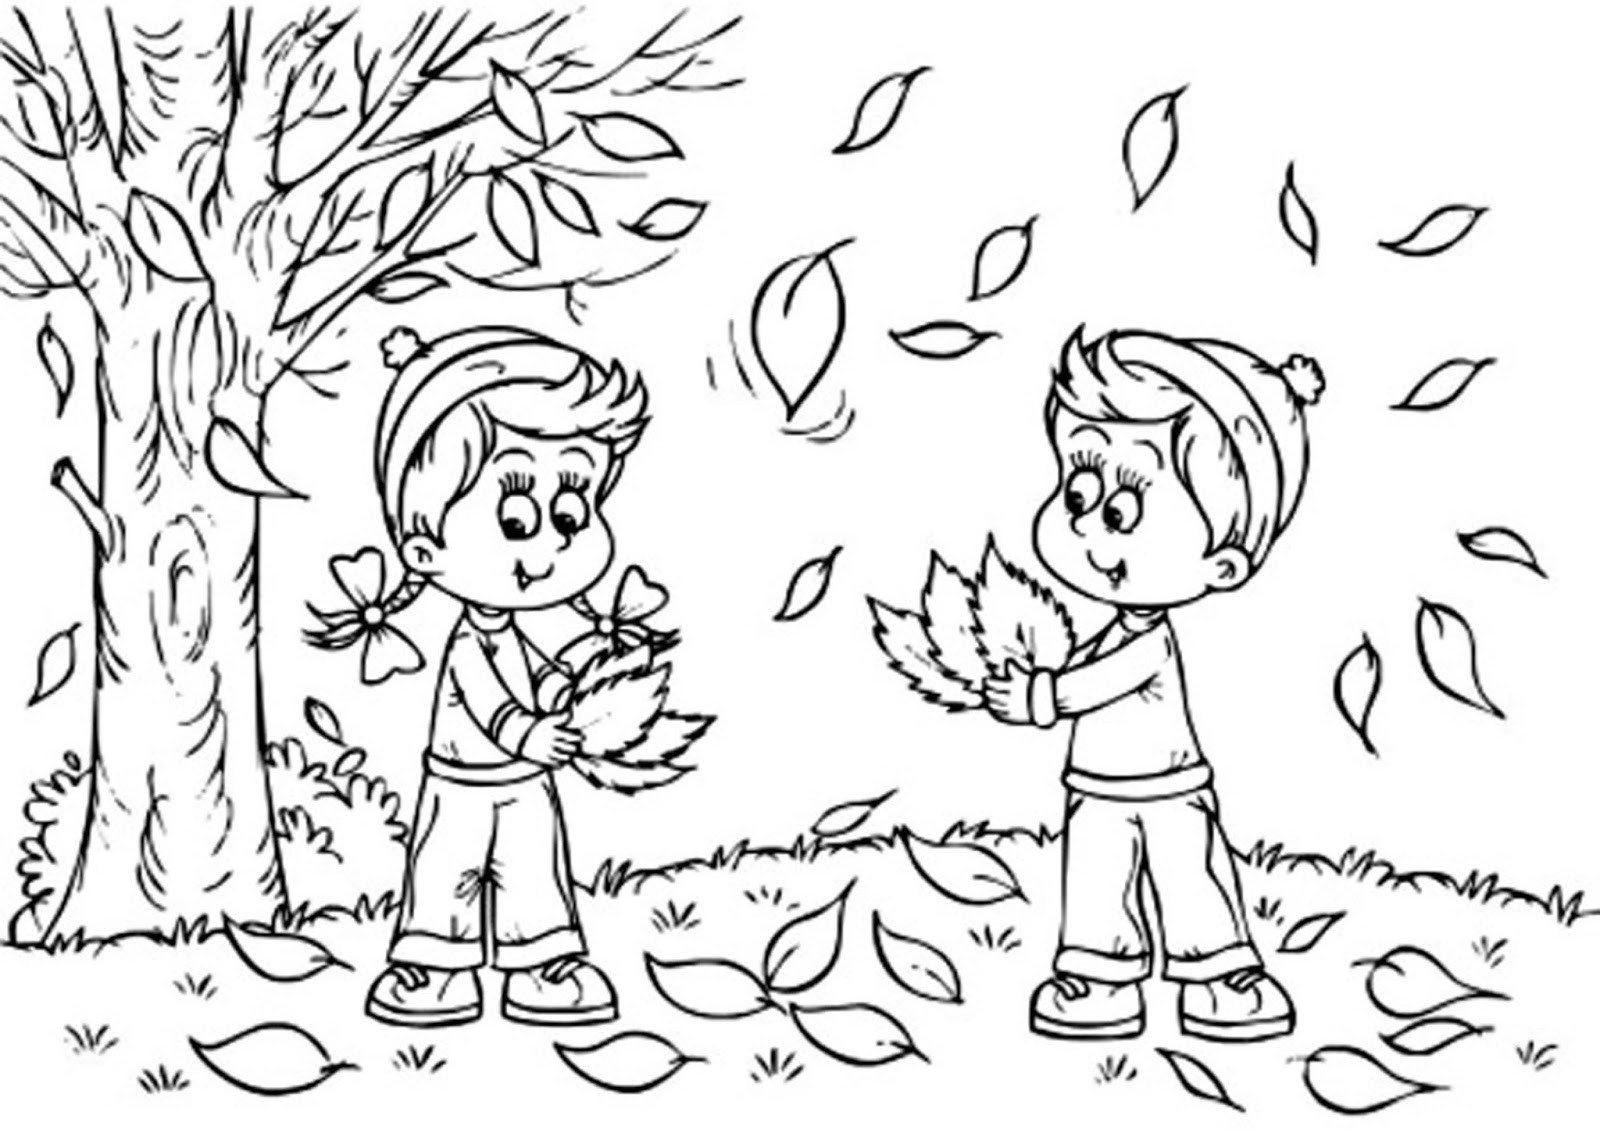 Fall leaves blowing coloring pages ~ Fall Leaves Coloring Pages 2016